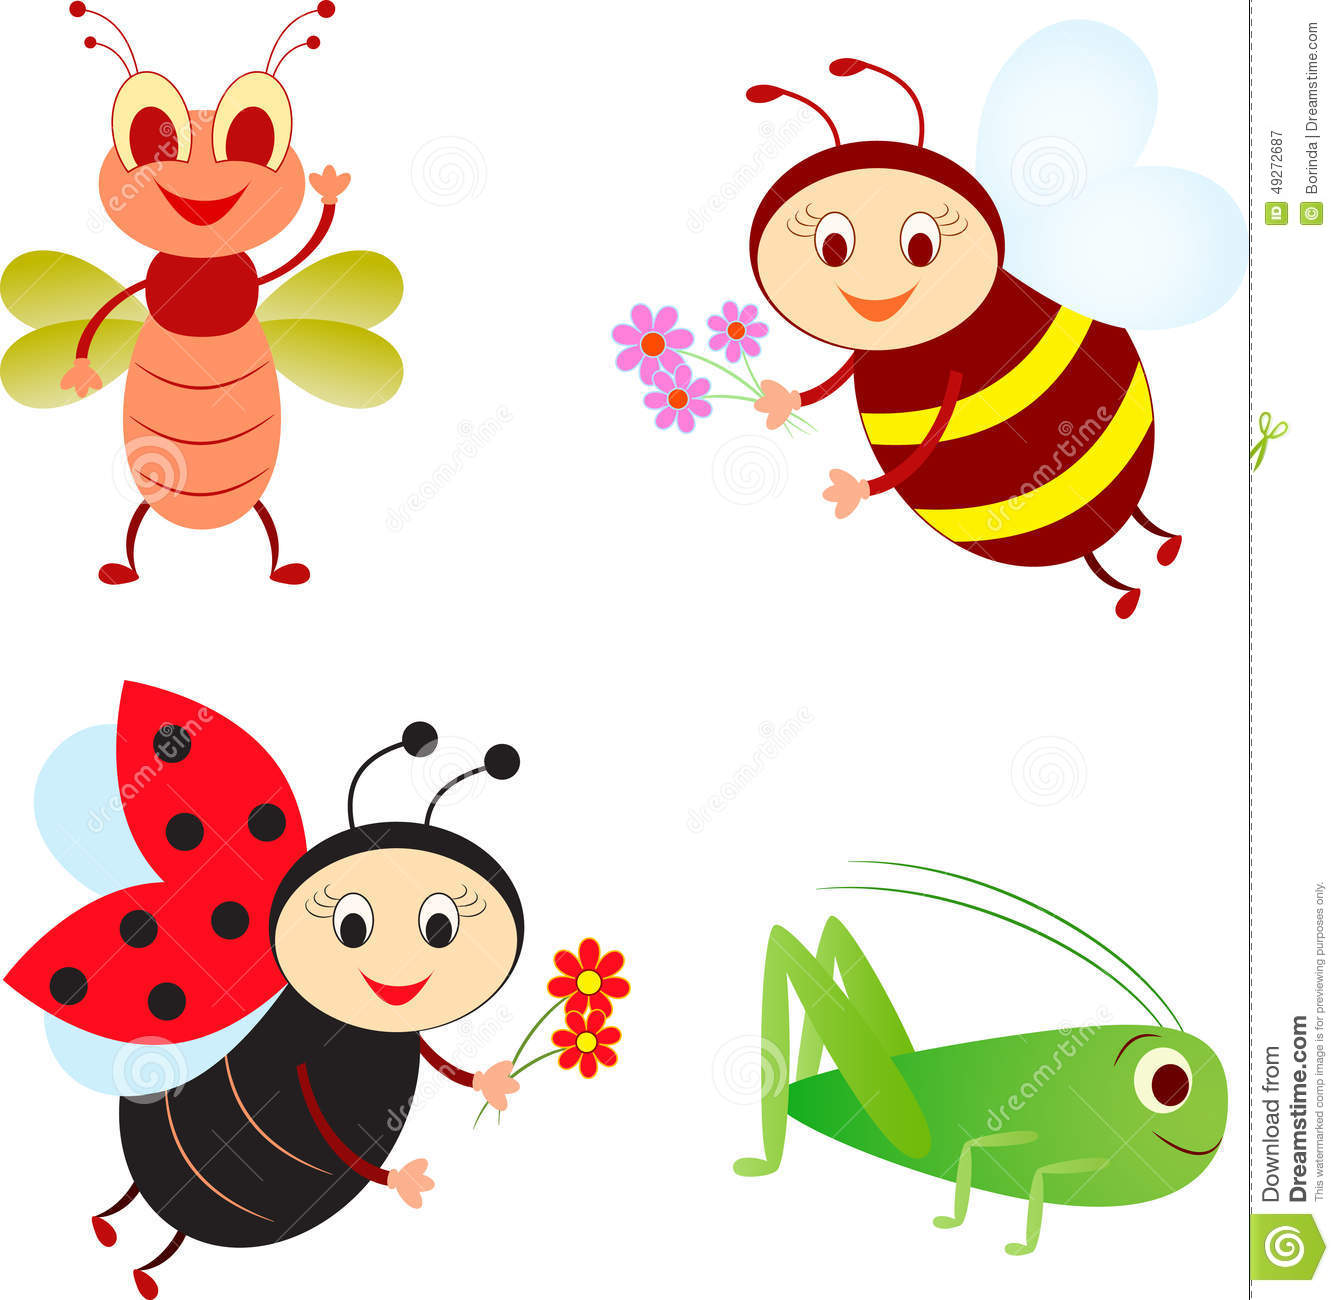 Isolated Insect Illustrations, Bee, Ladybug, Grasshopper, Fly.